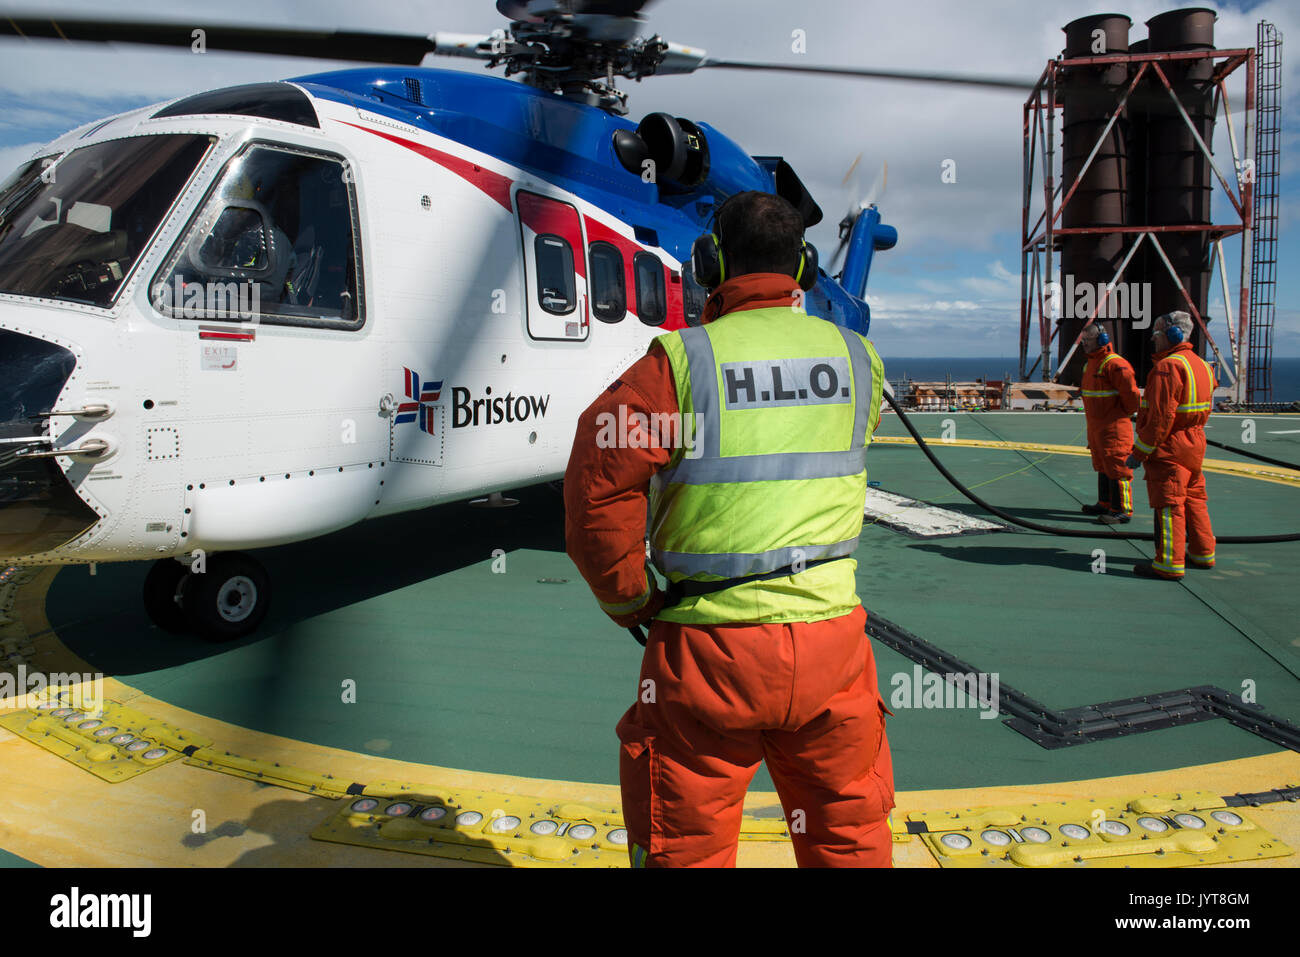 Bristow Helicopter, landing on a north sea oil and gas platform. Helideck team refuelling, credit: LEE RAMSDEN / ALAMY - Stock Image